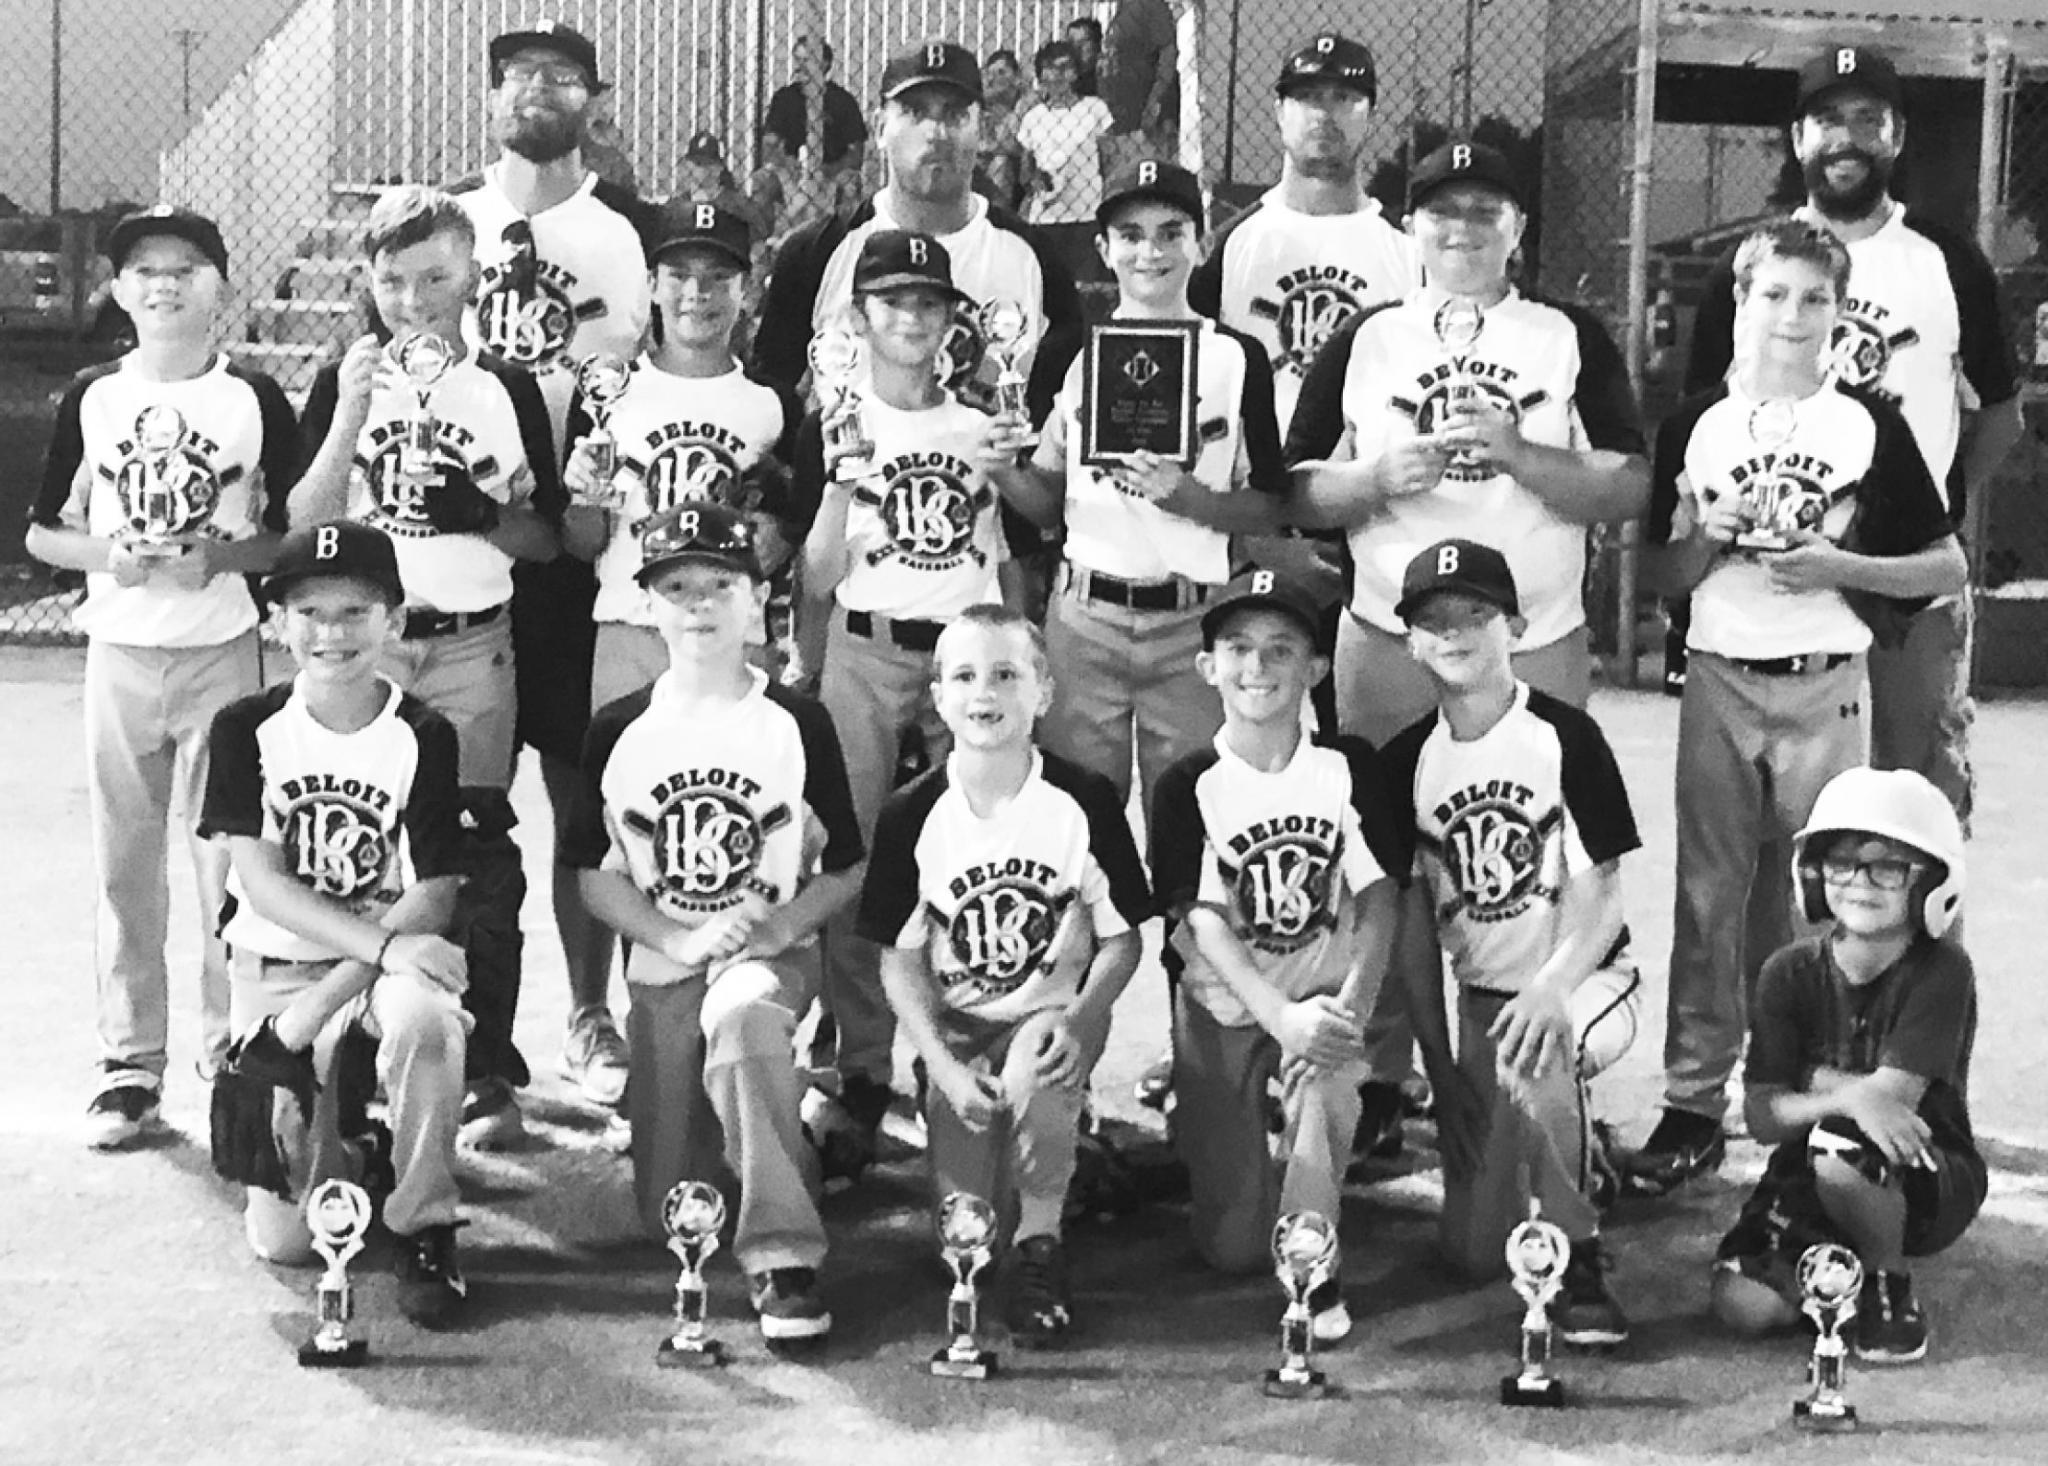 District 1 Champions The 12-Under Pee Wee District 1 Champions Beloit Hornets team are from left to right, front row: Kanean Olson, Rilee Lundine, Simeon Horinek, Carson Thomas, Jon Fouts, Kael Rabe. Middle row: Charlie Burke, Kaden Rabe, Pax Milbers, Wad